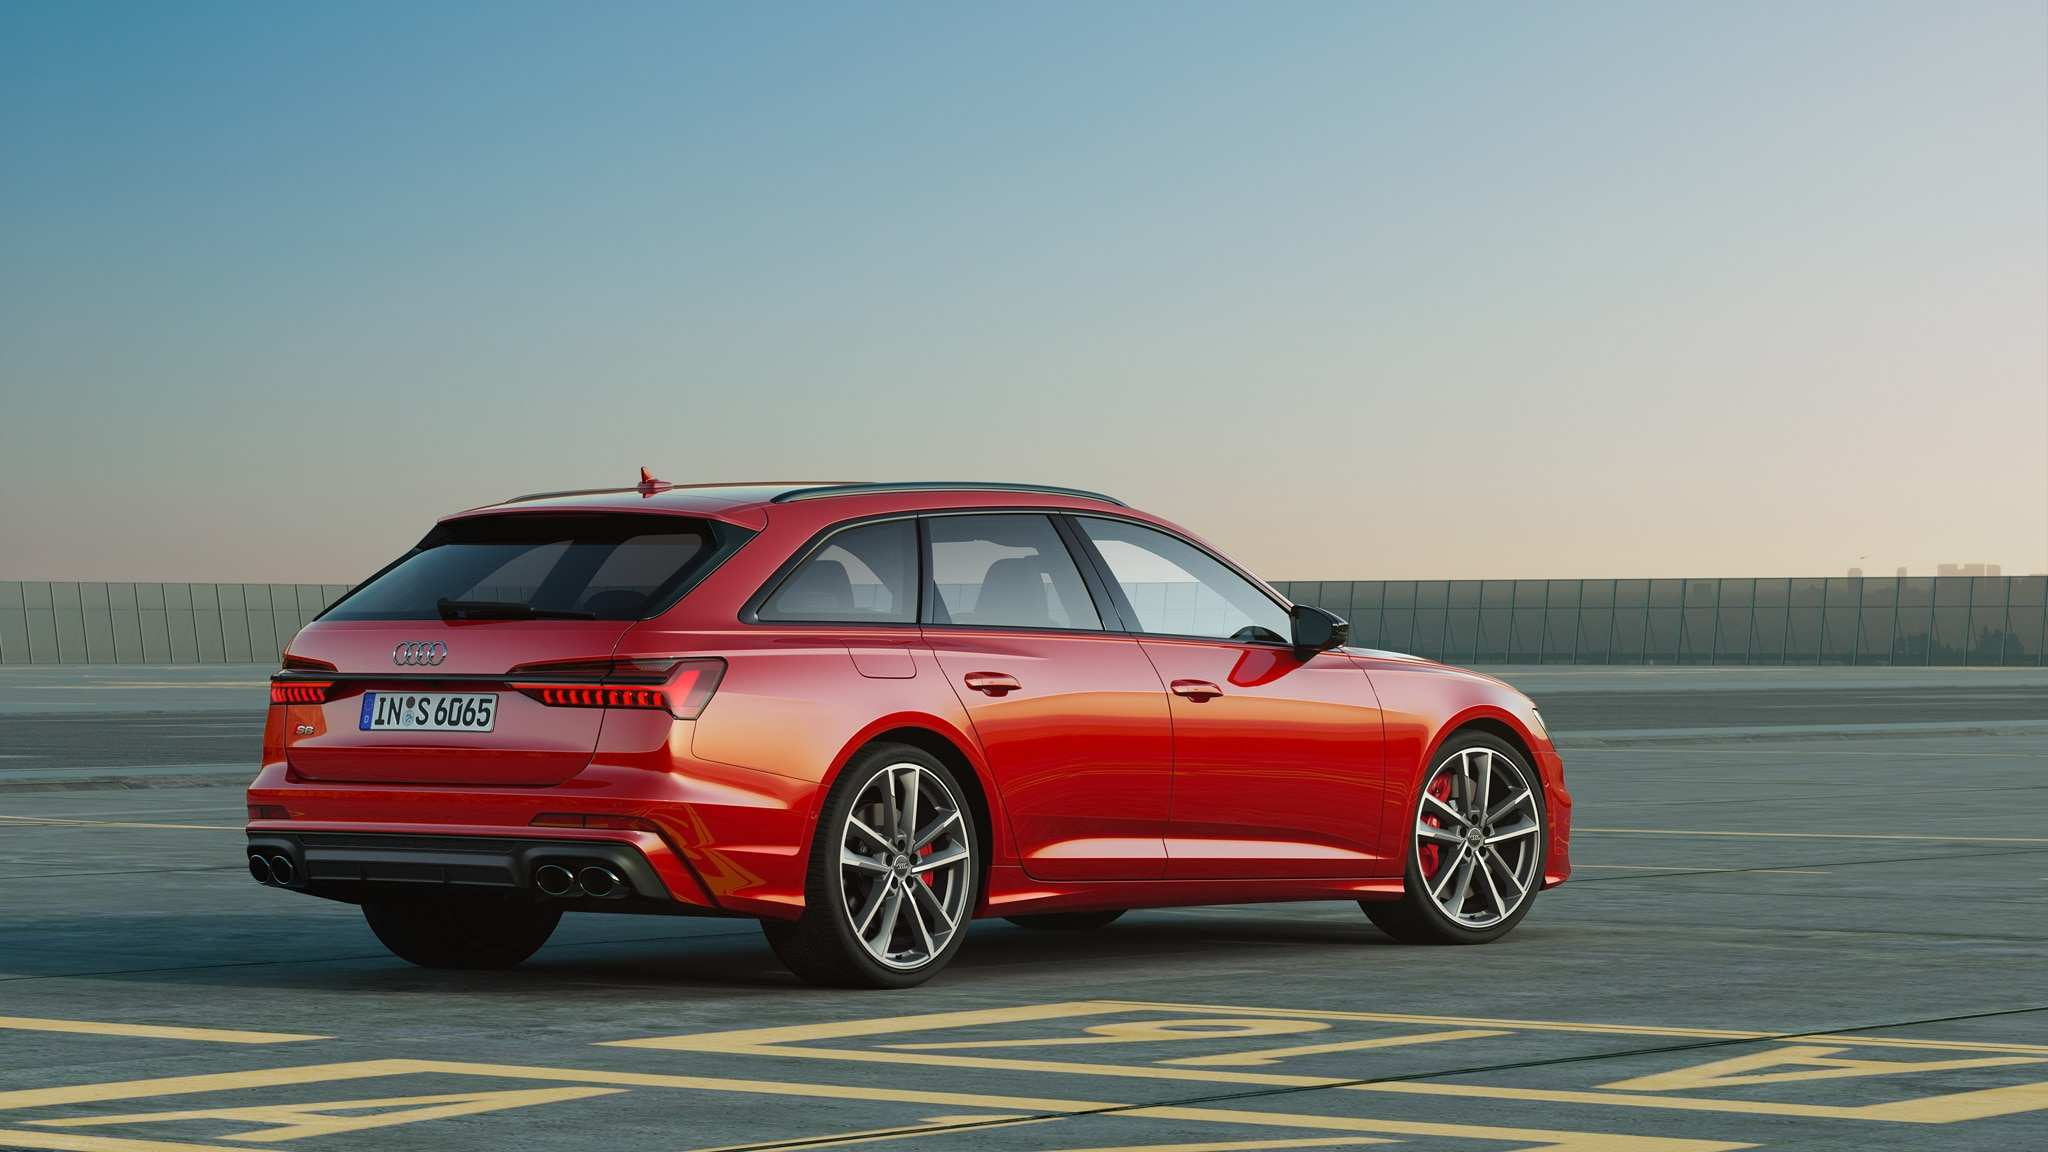 41 All New 2020 Audi A6 Wagon Exterior and Interior by 2020 Audi A6 Wagon